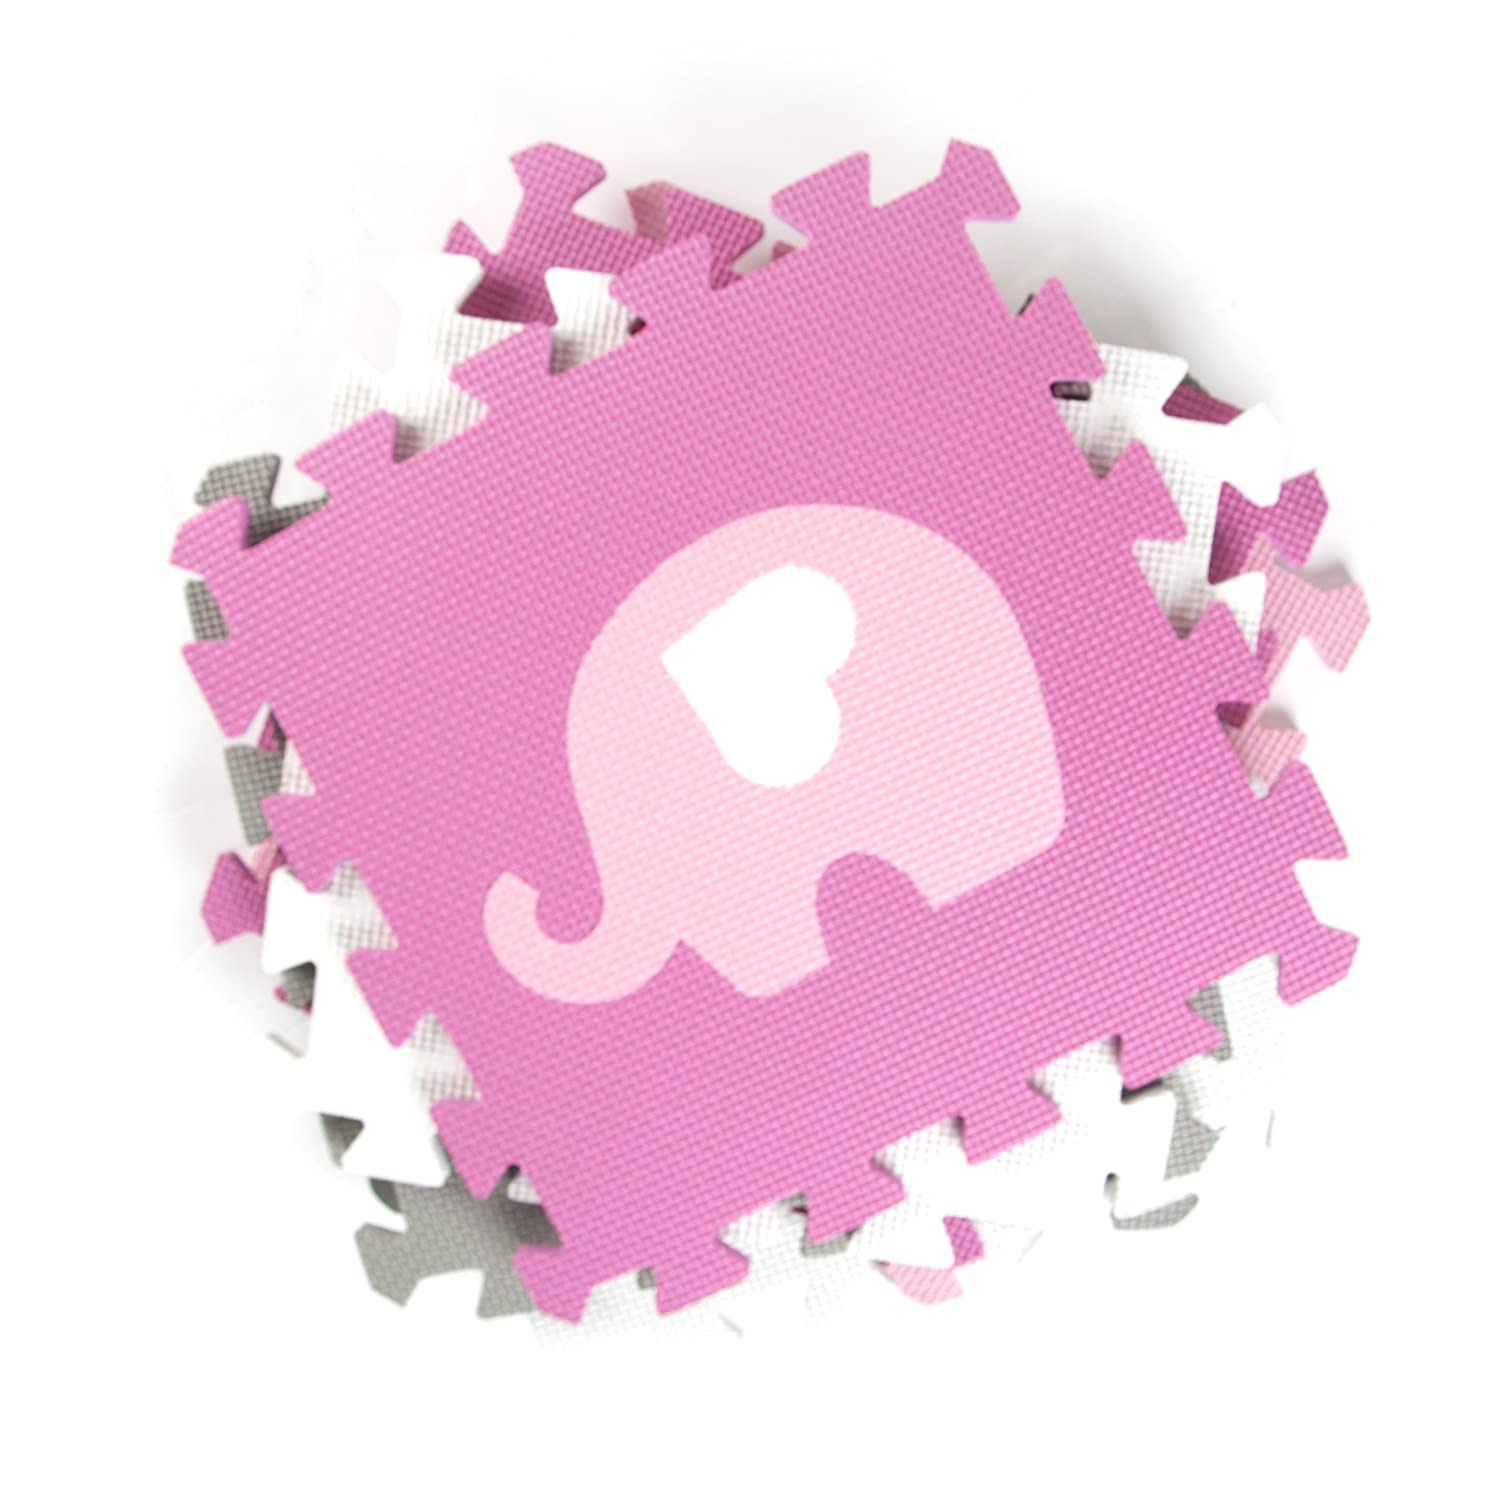 Tadpoles Playmat Set, Elephants, White//Hearts//Pink//Grey Sleeping Partners cpmsev927